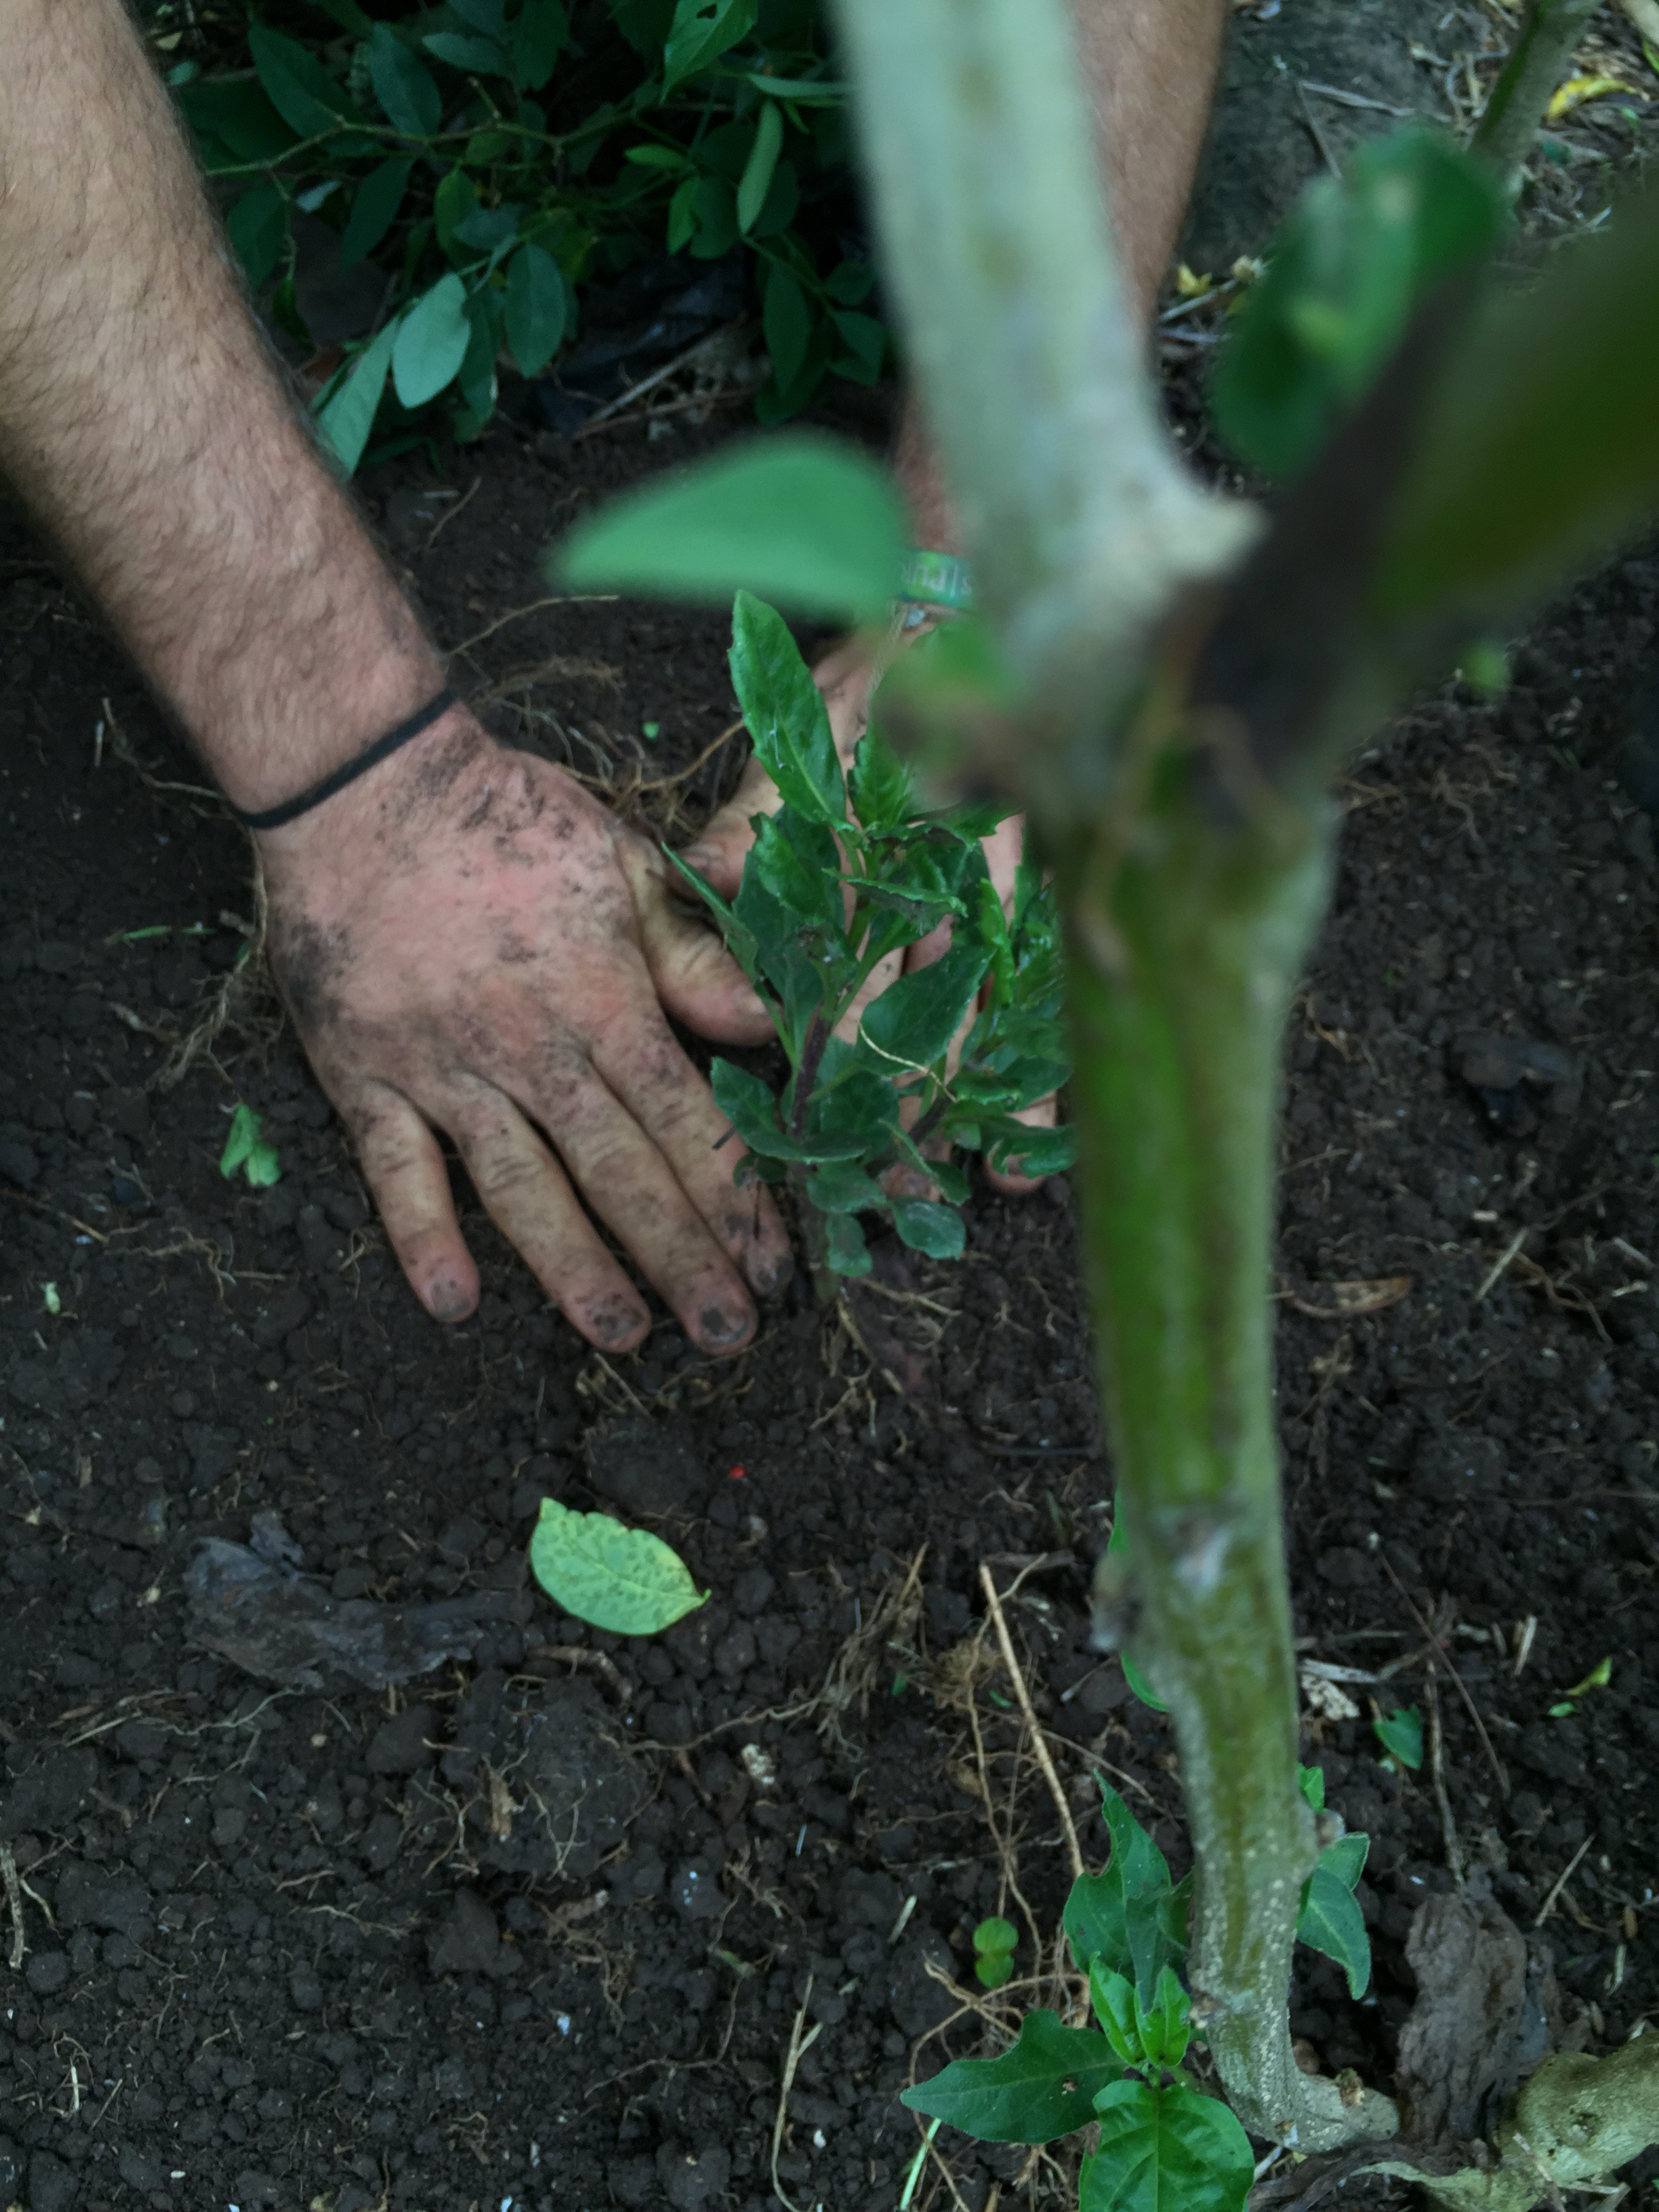 Farmer hands hard at work planting tomato plants in the edible garden